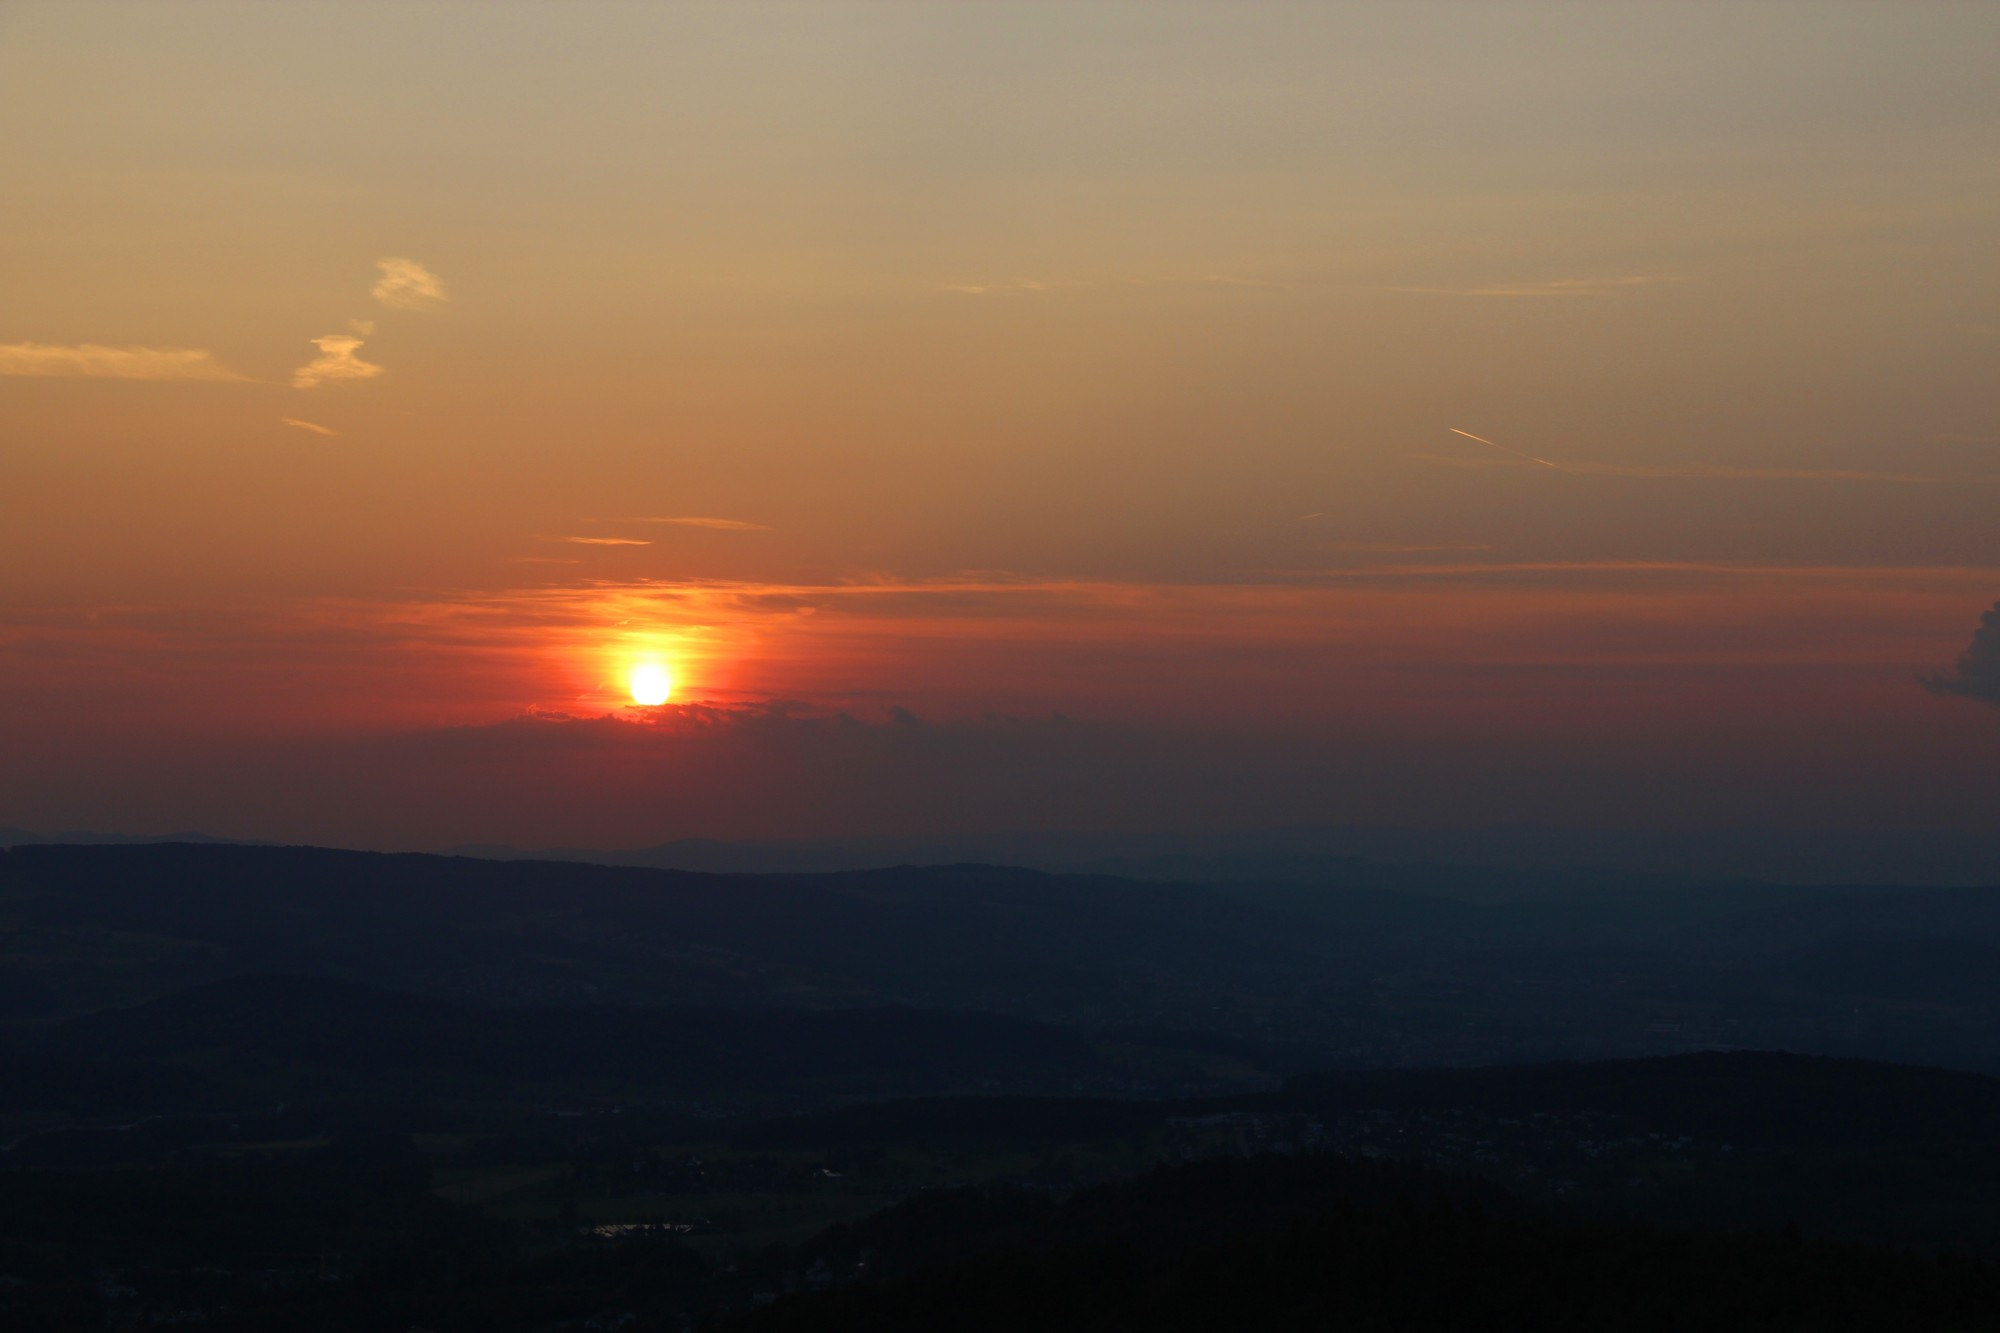 Sunset from Üetliberg